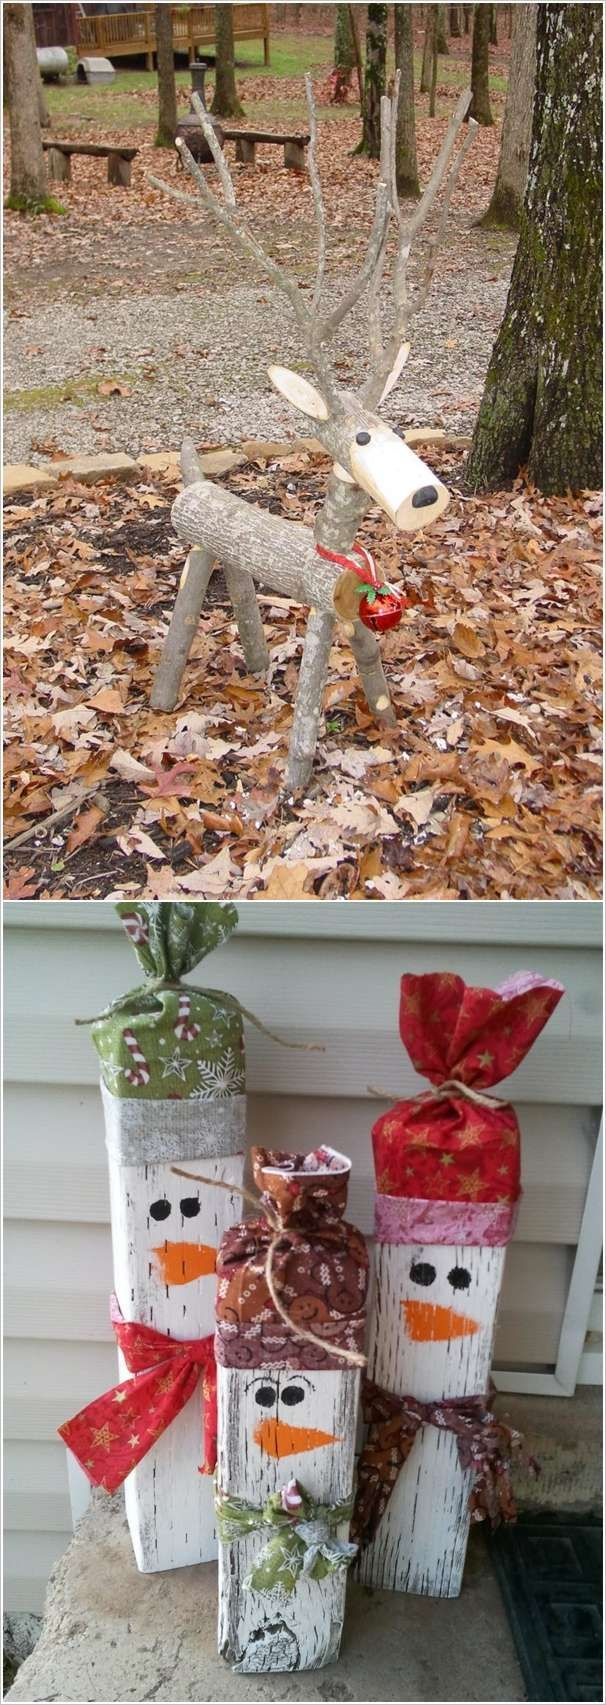 Wood yard decorations - I Need To Diy These Beautiful Rustic Outdoor Wooden Decorations